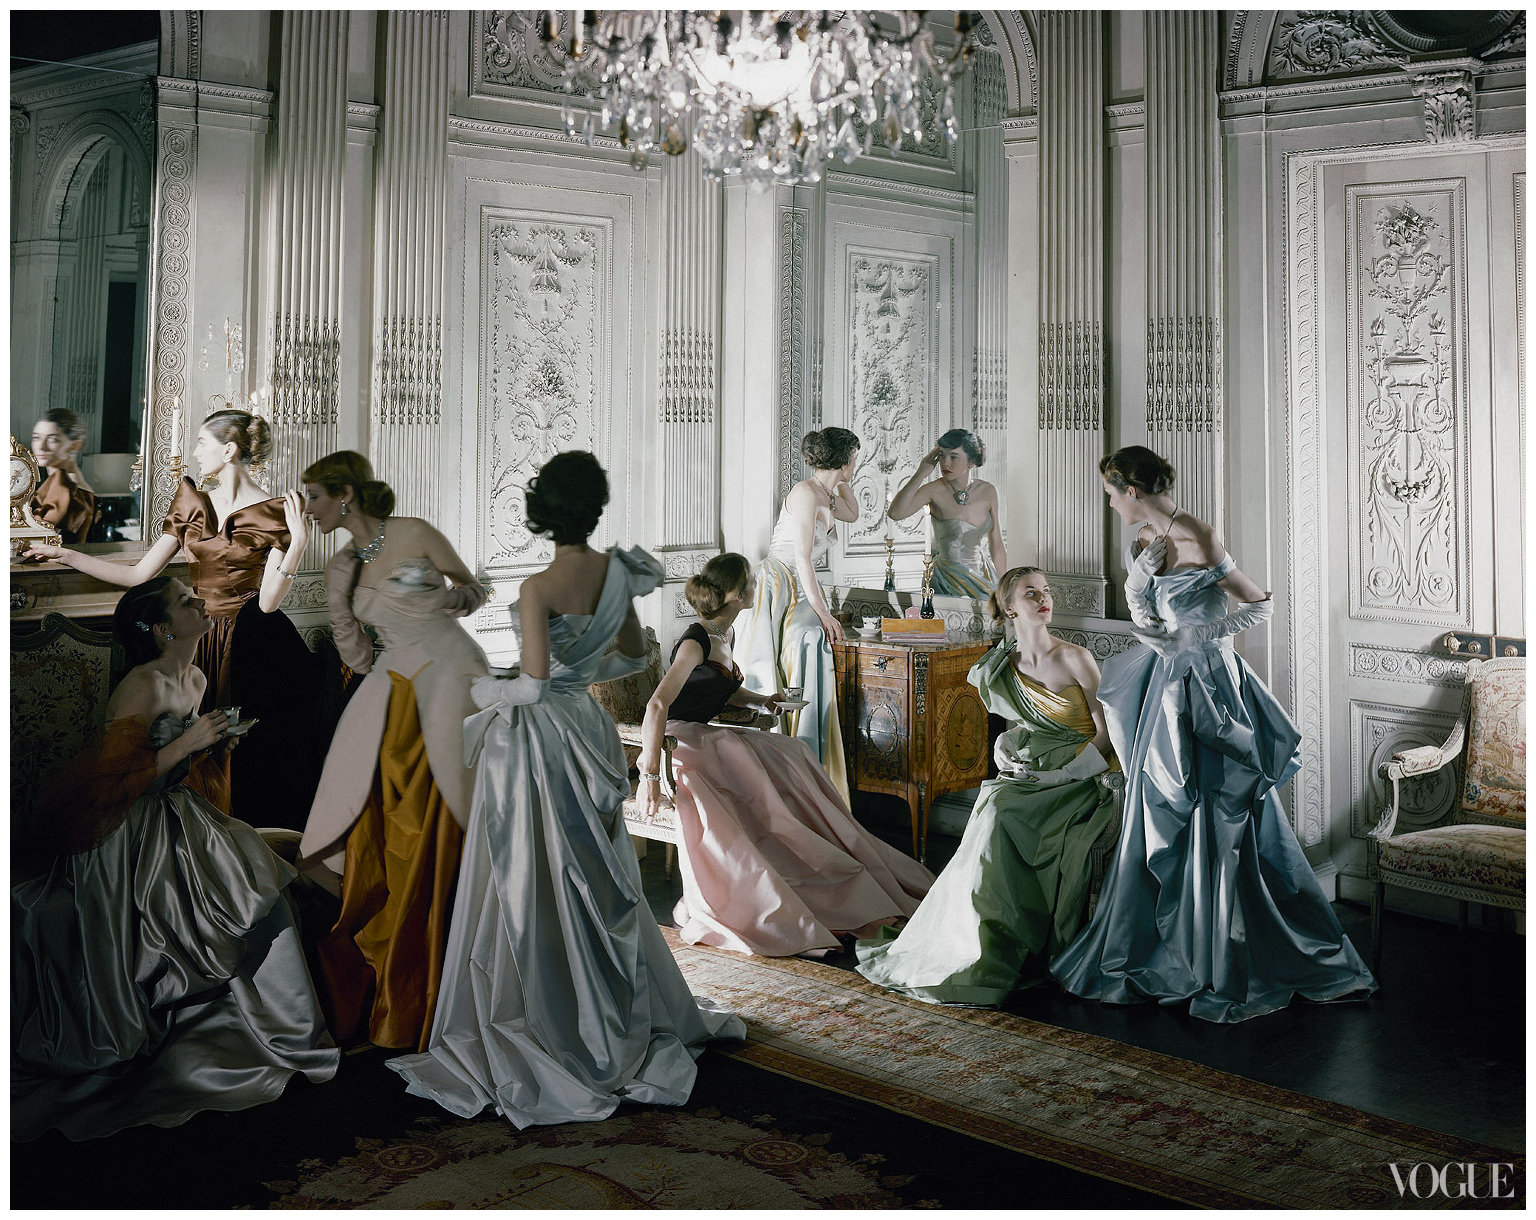 iconic-image-of-charles-james-ball-gowns-photographed-in-the-salon-of-french-co-new-york-photographed-by-cecil-beaton-1948.jpg